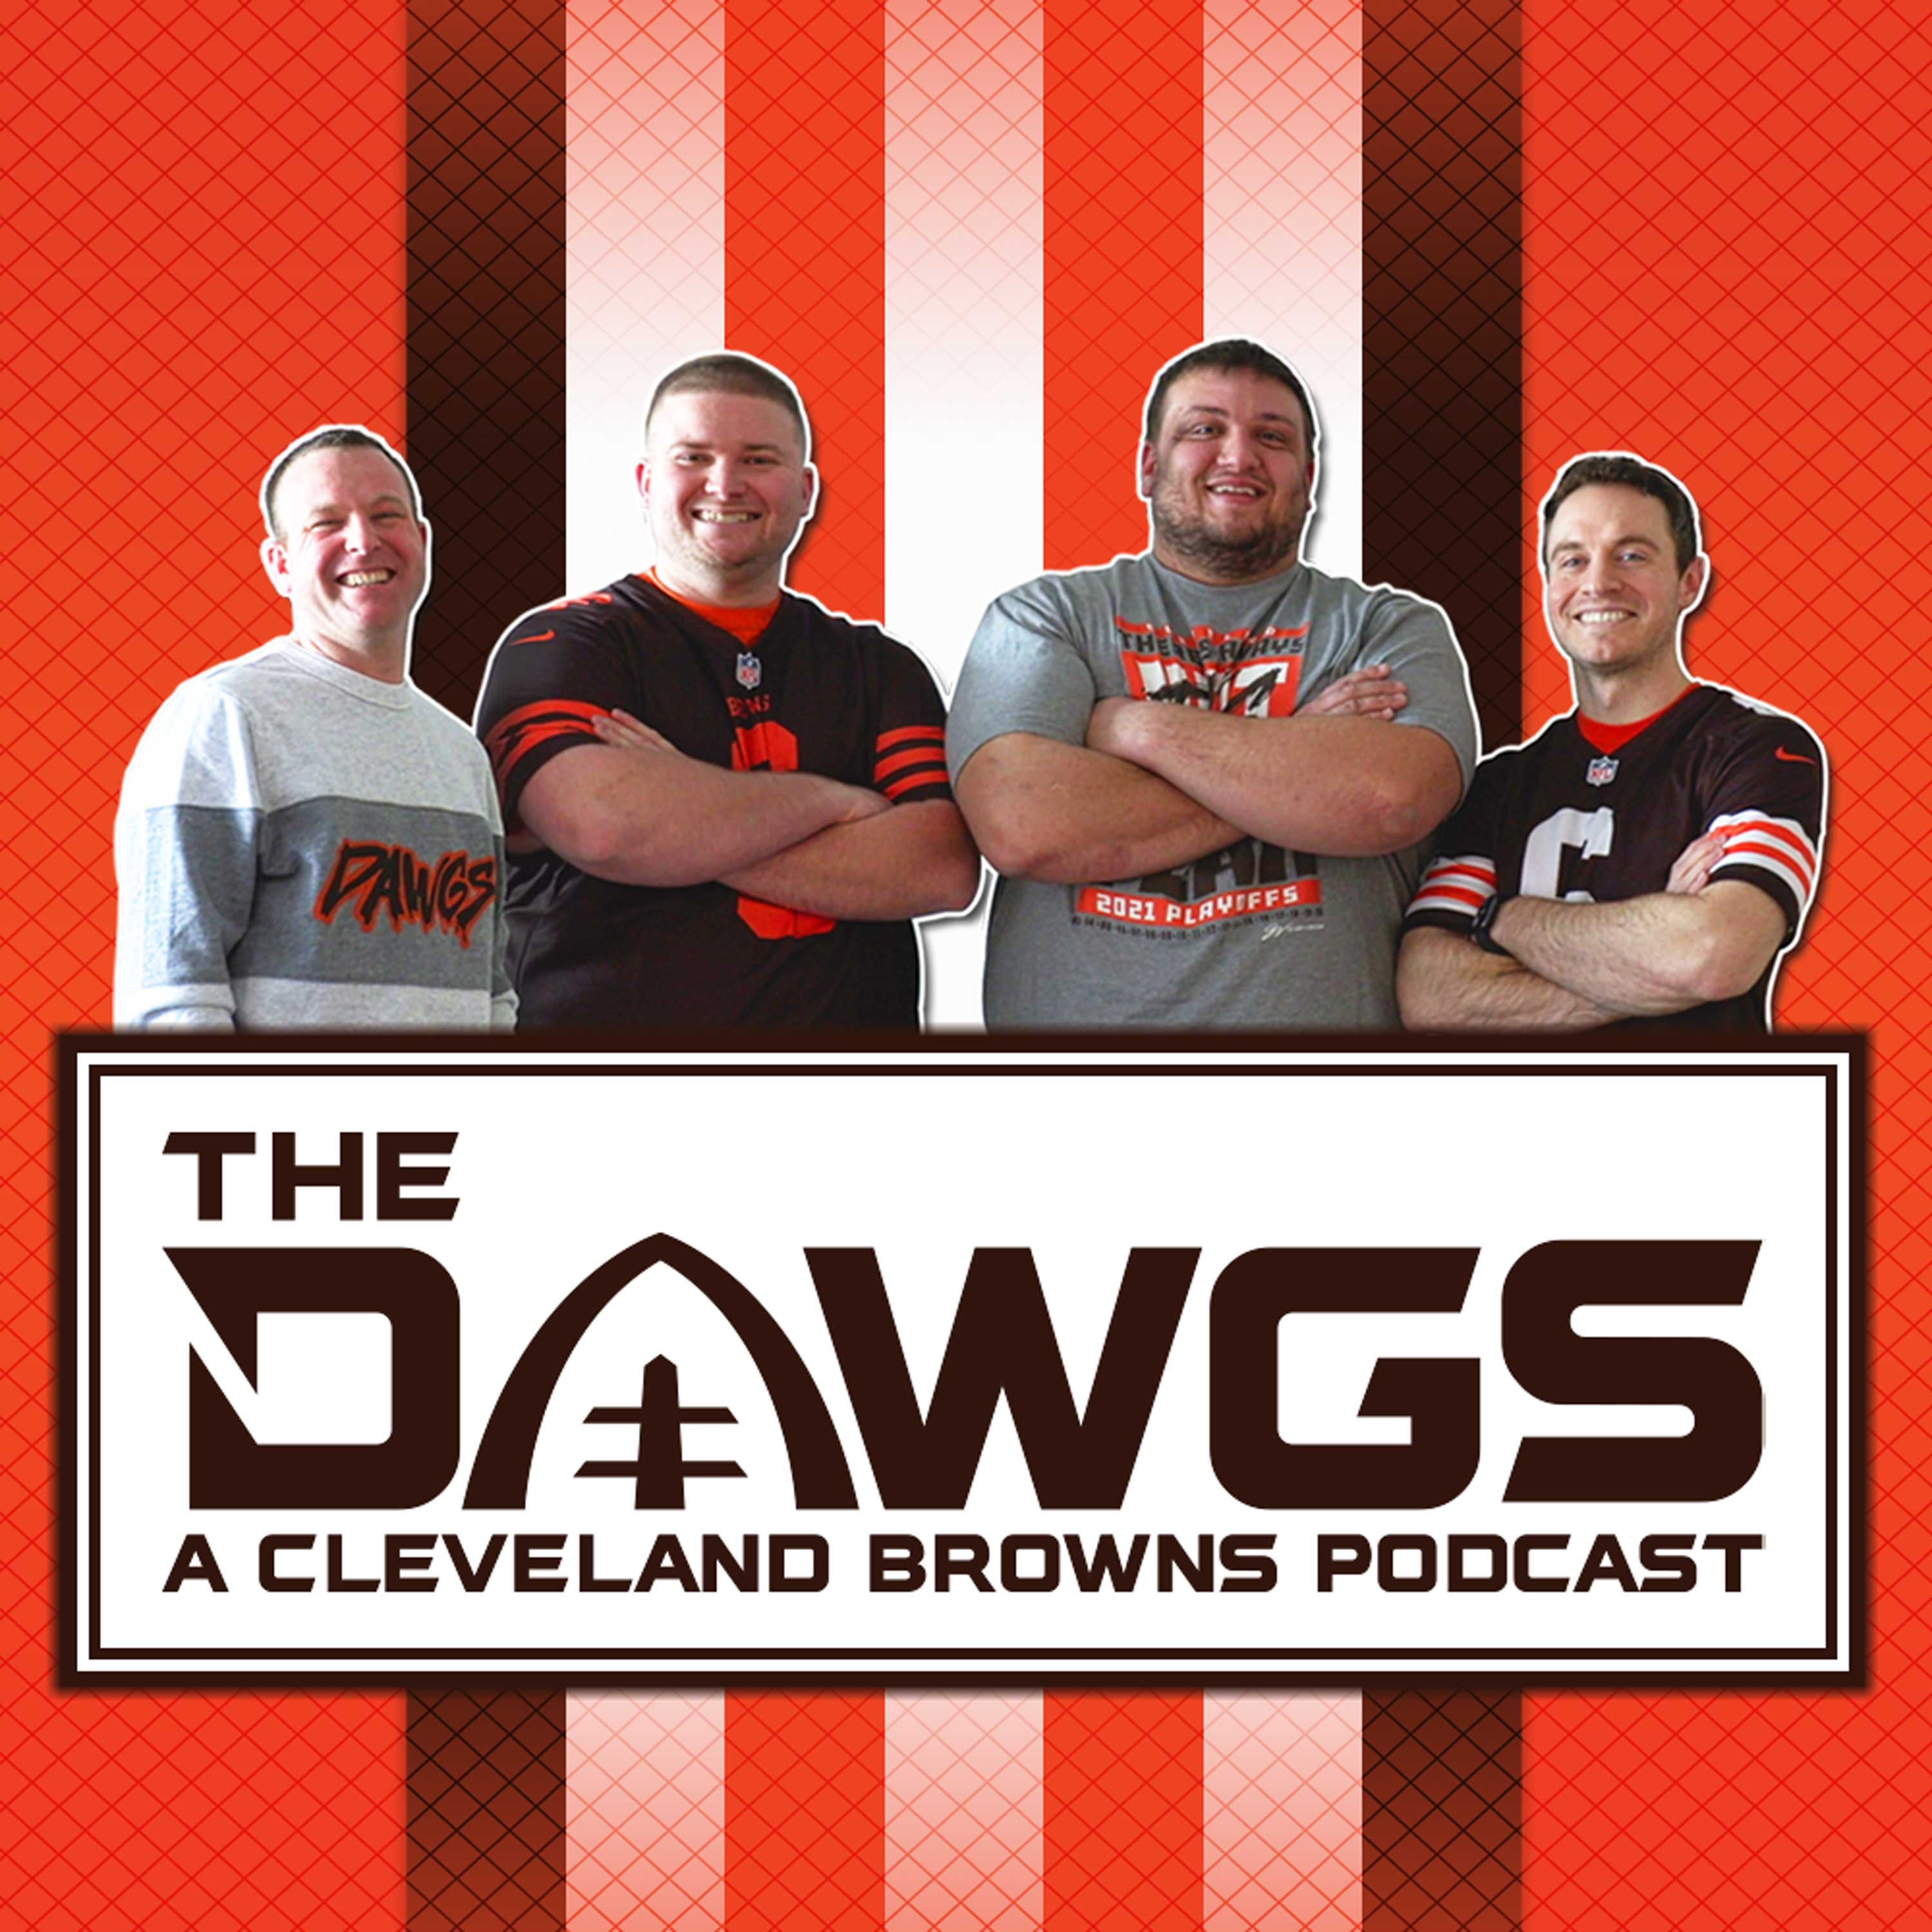 Artwork for podcast The Dawgs - A Cleveland Browns Podcast